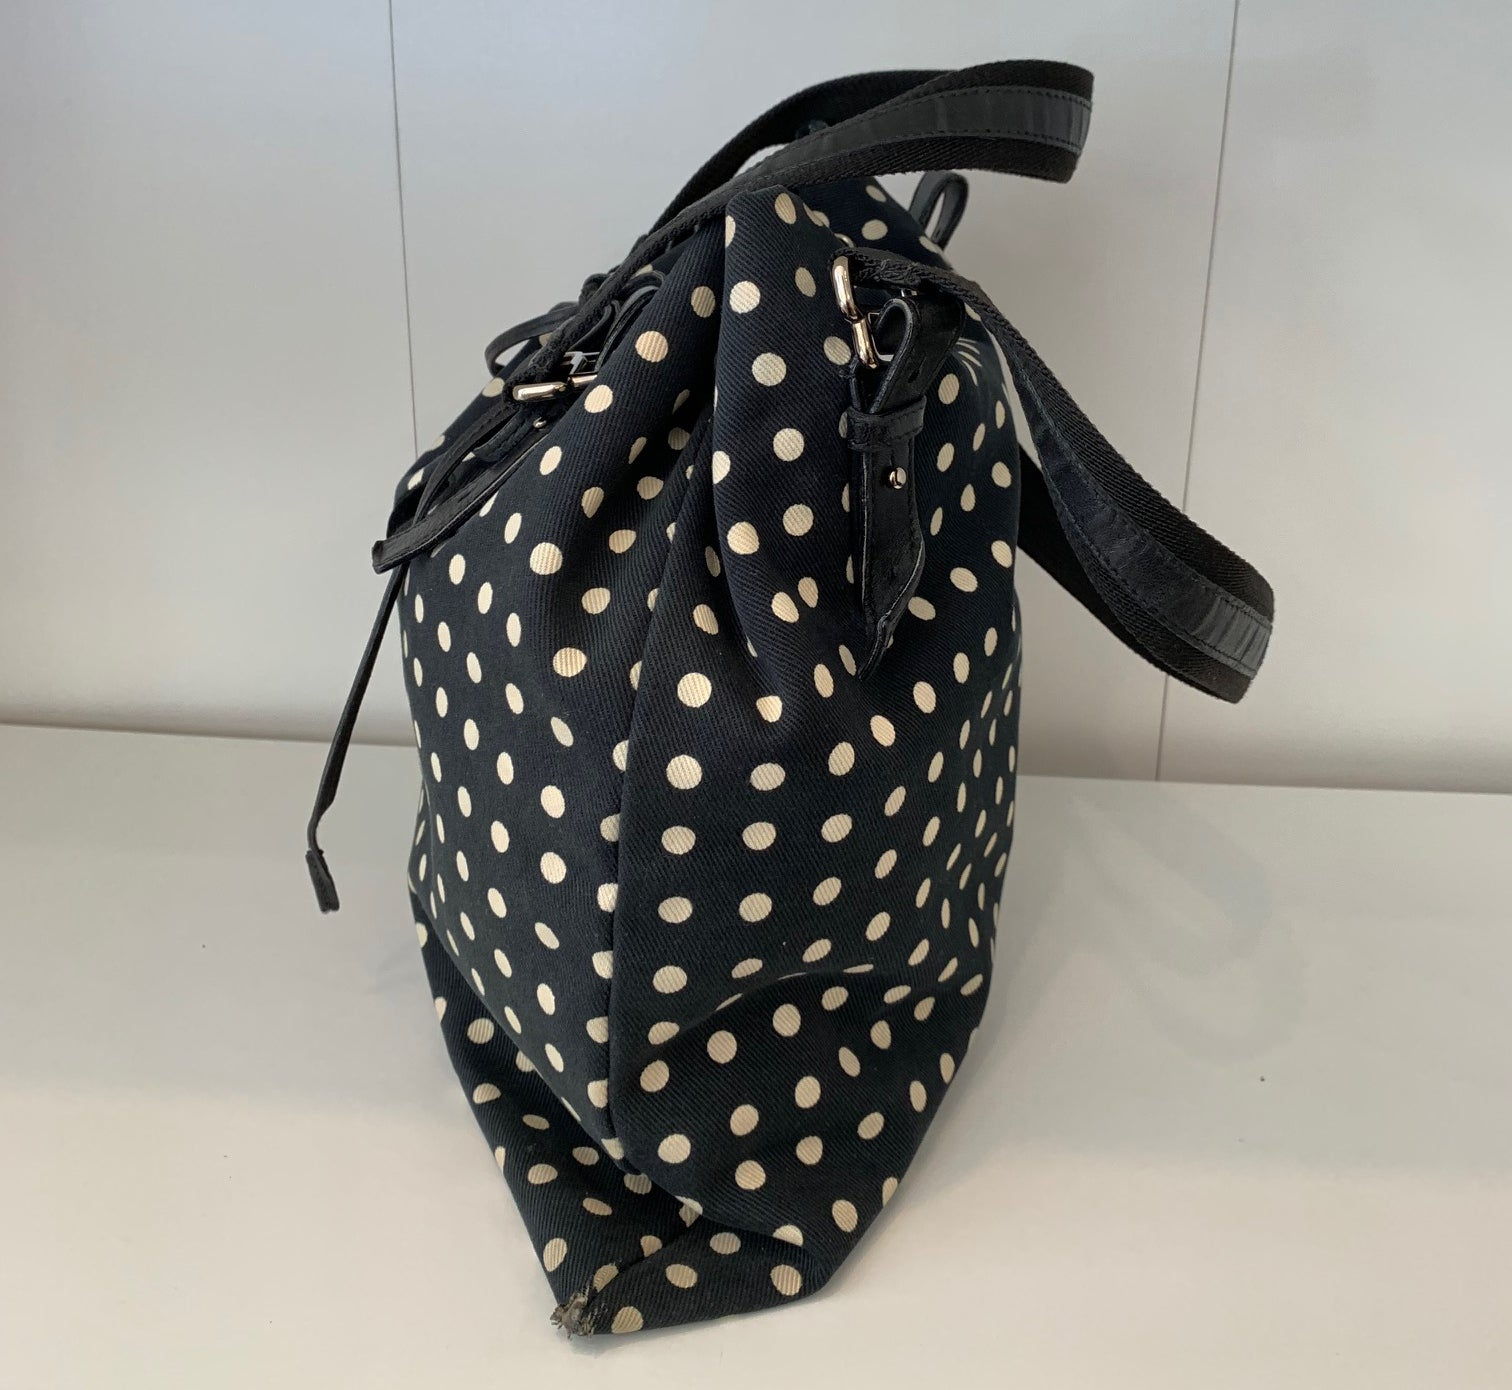 YSL Polka Dot Canvas Drawstring Tote Bag